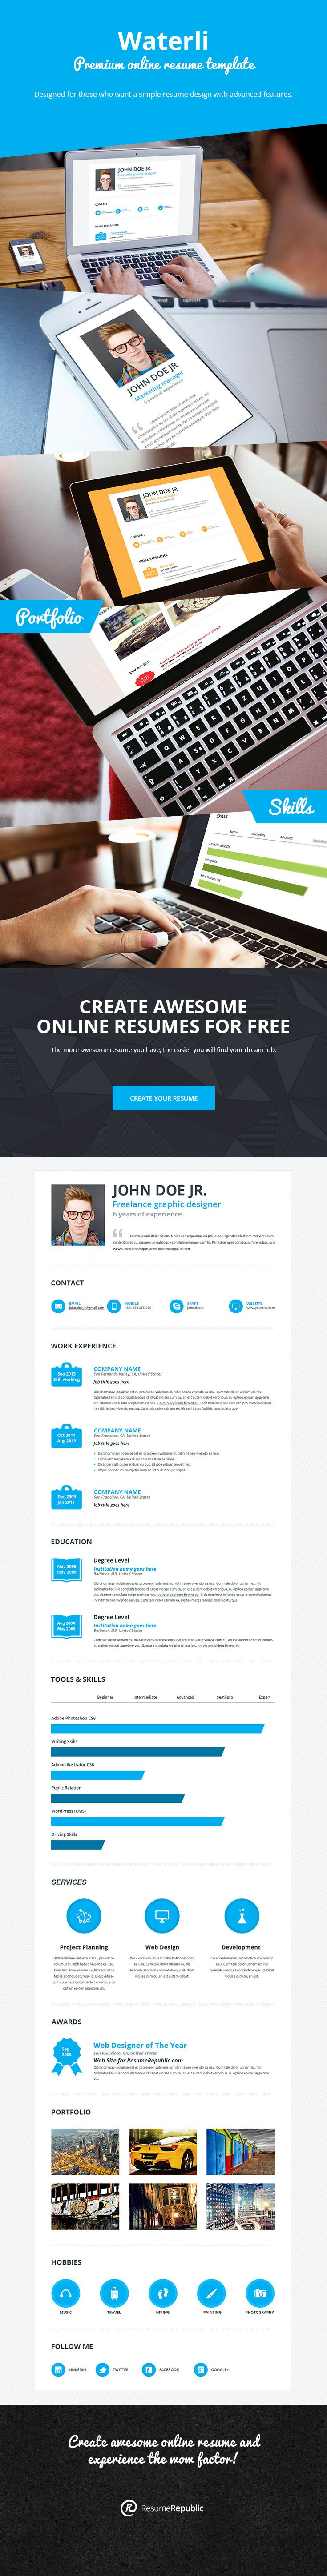 10 best resume template waterli images on pinterest